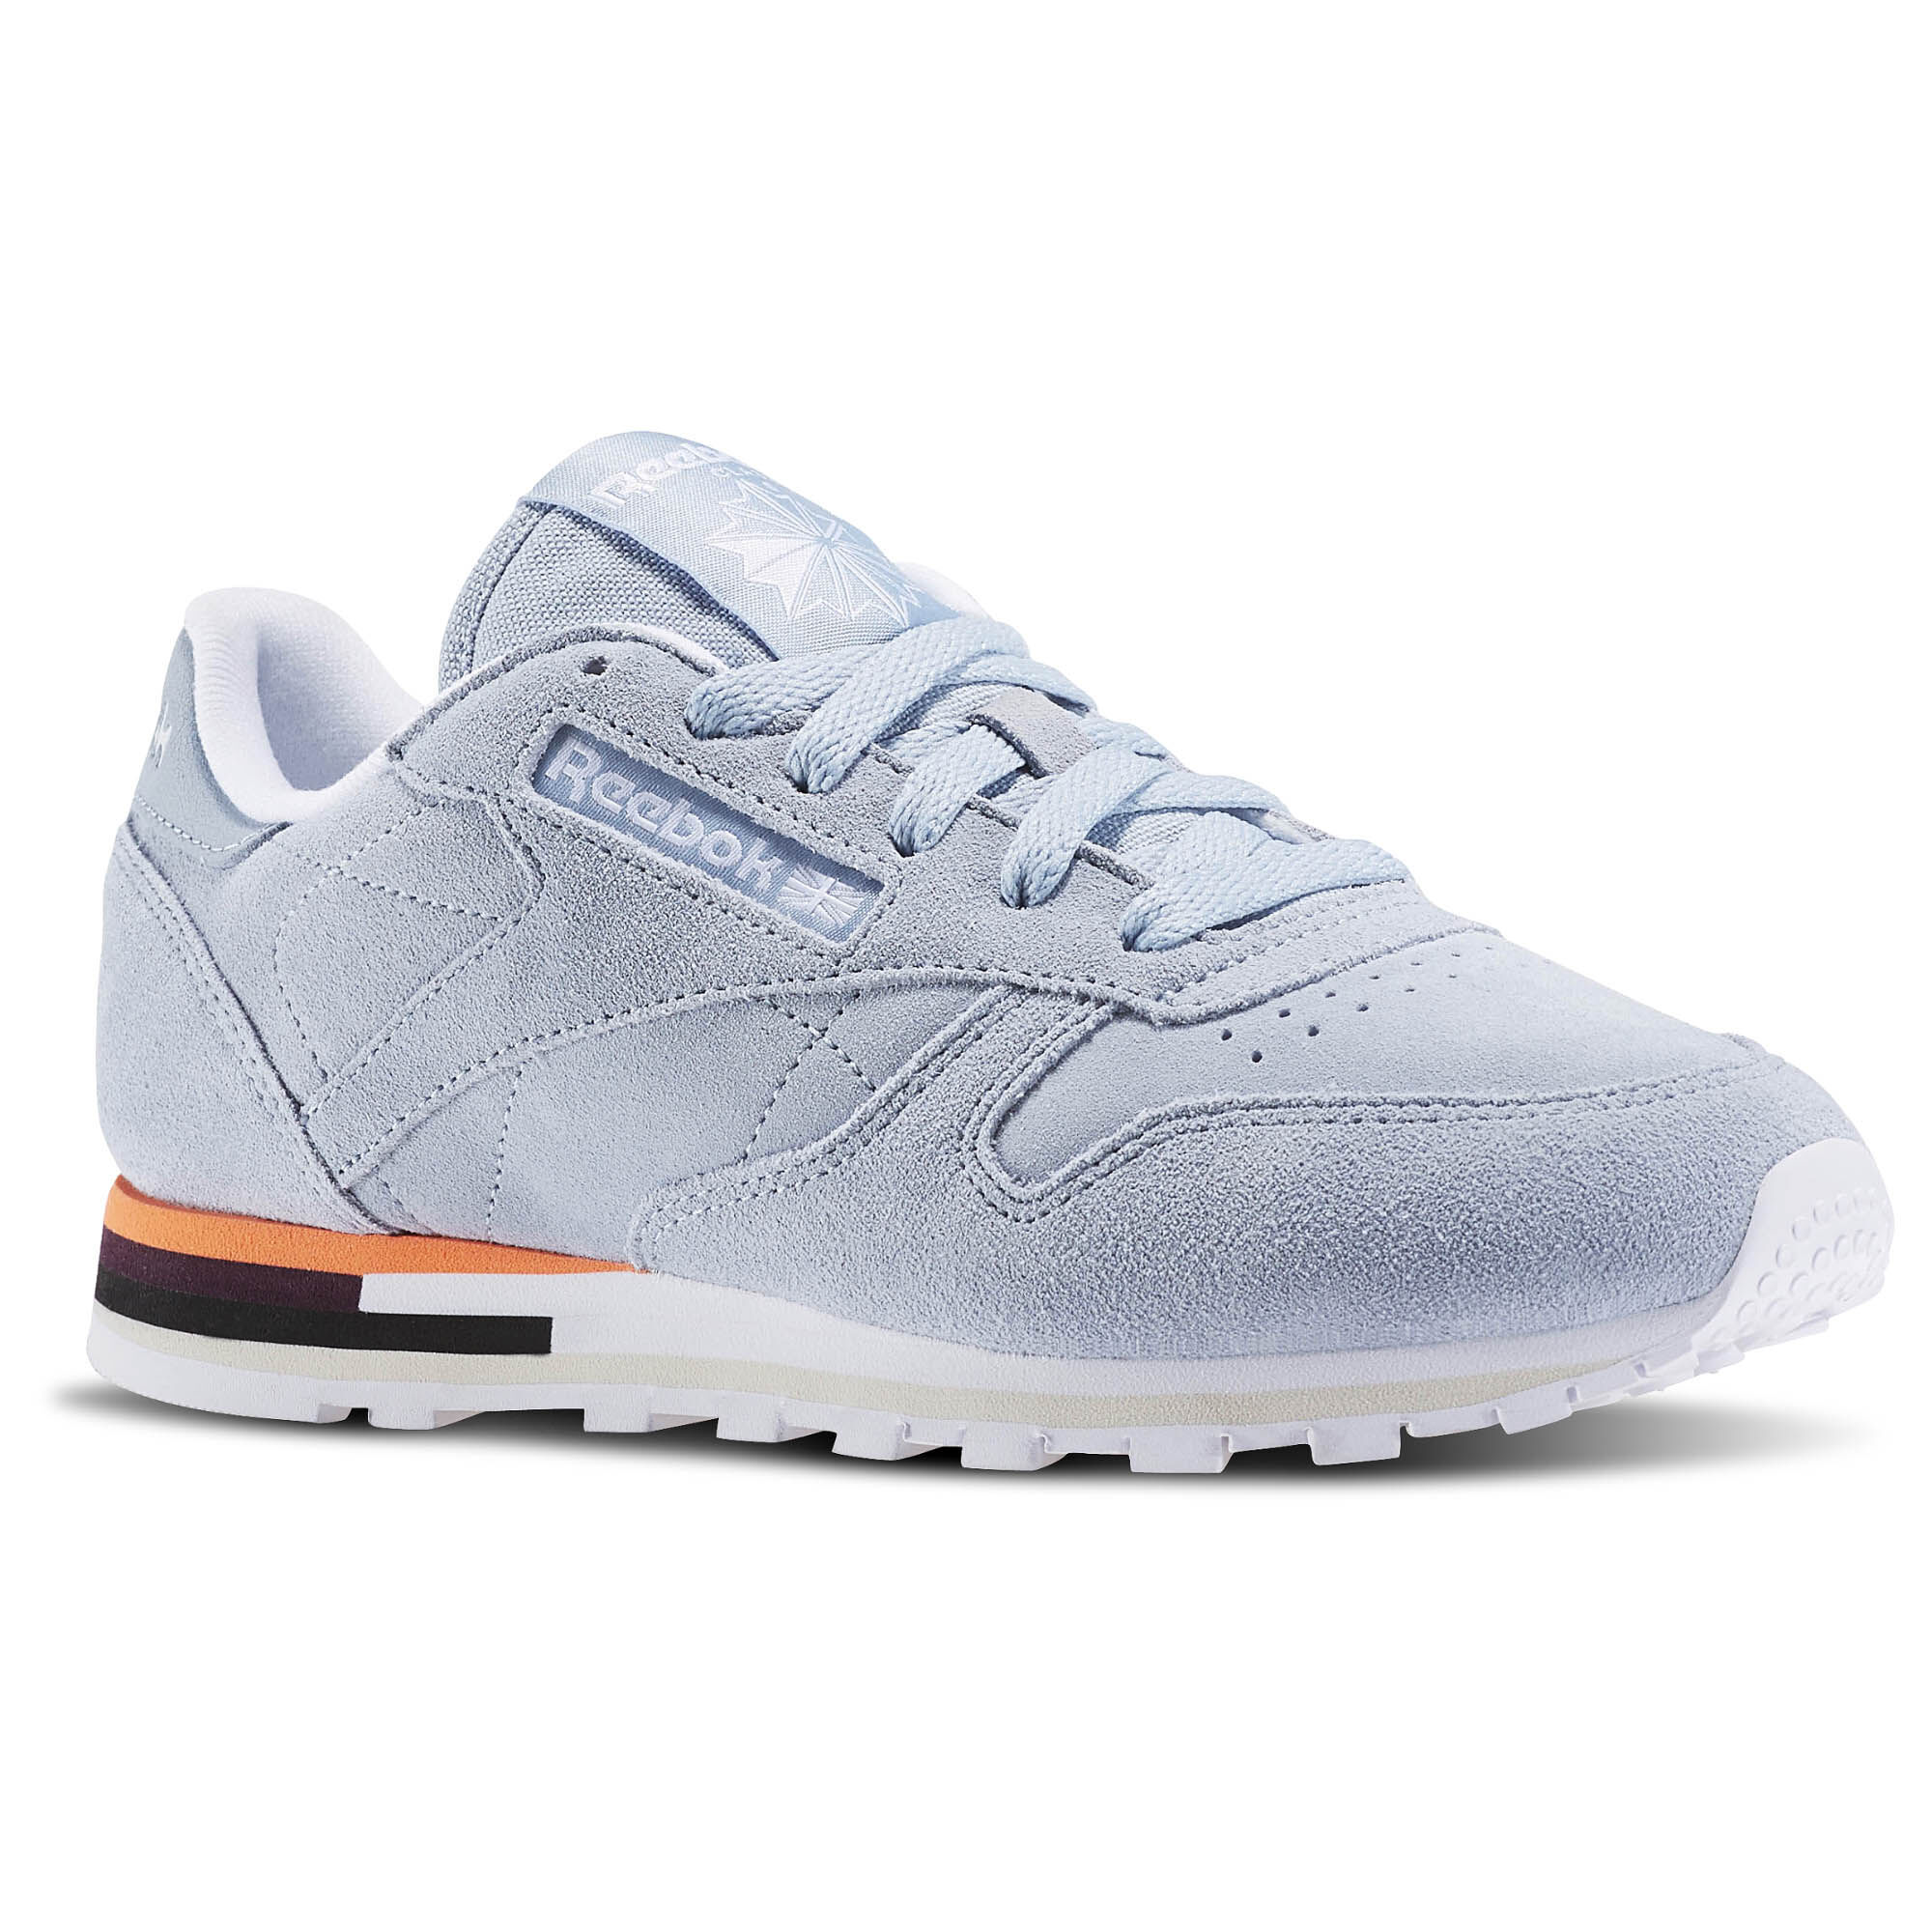 a52f7ae29278 Buy reebok classic white leather shoes   OFF79% Discounted